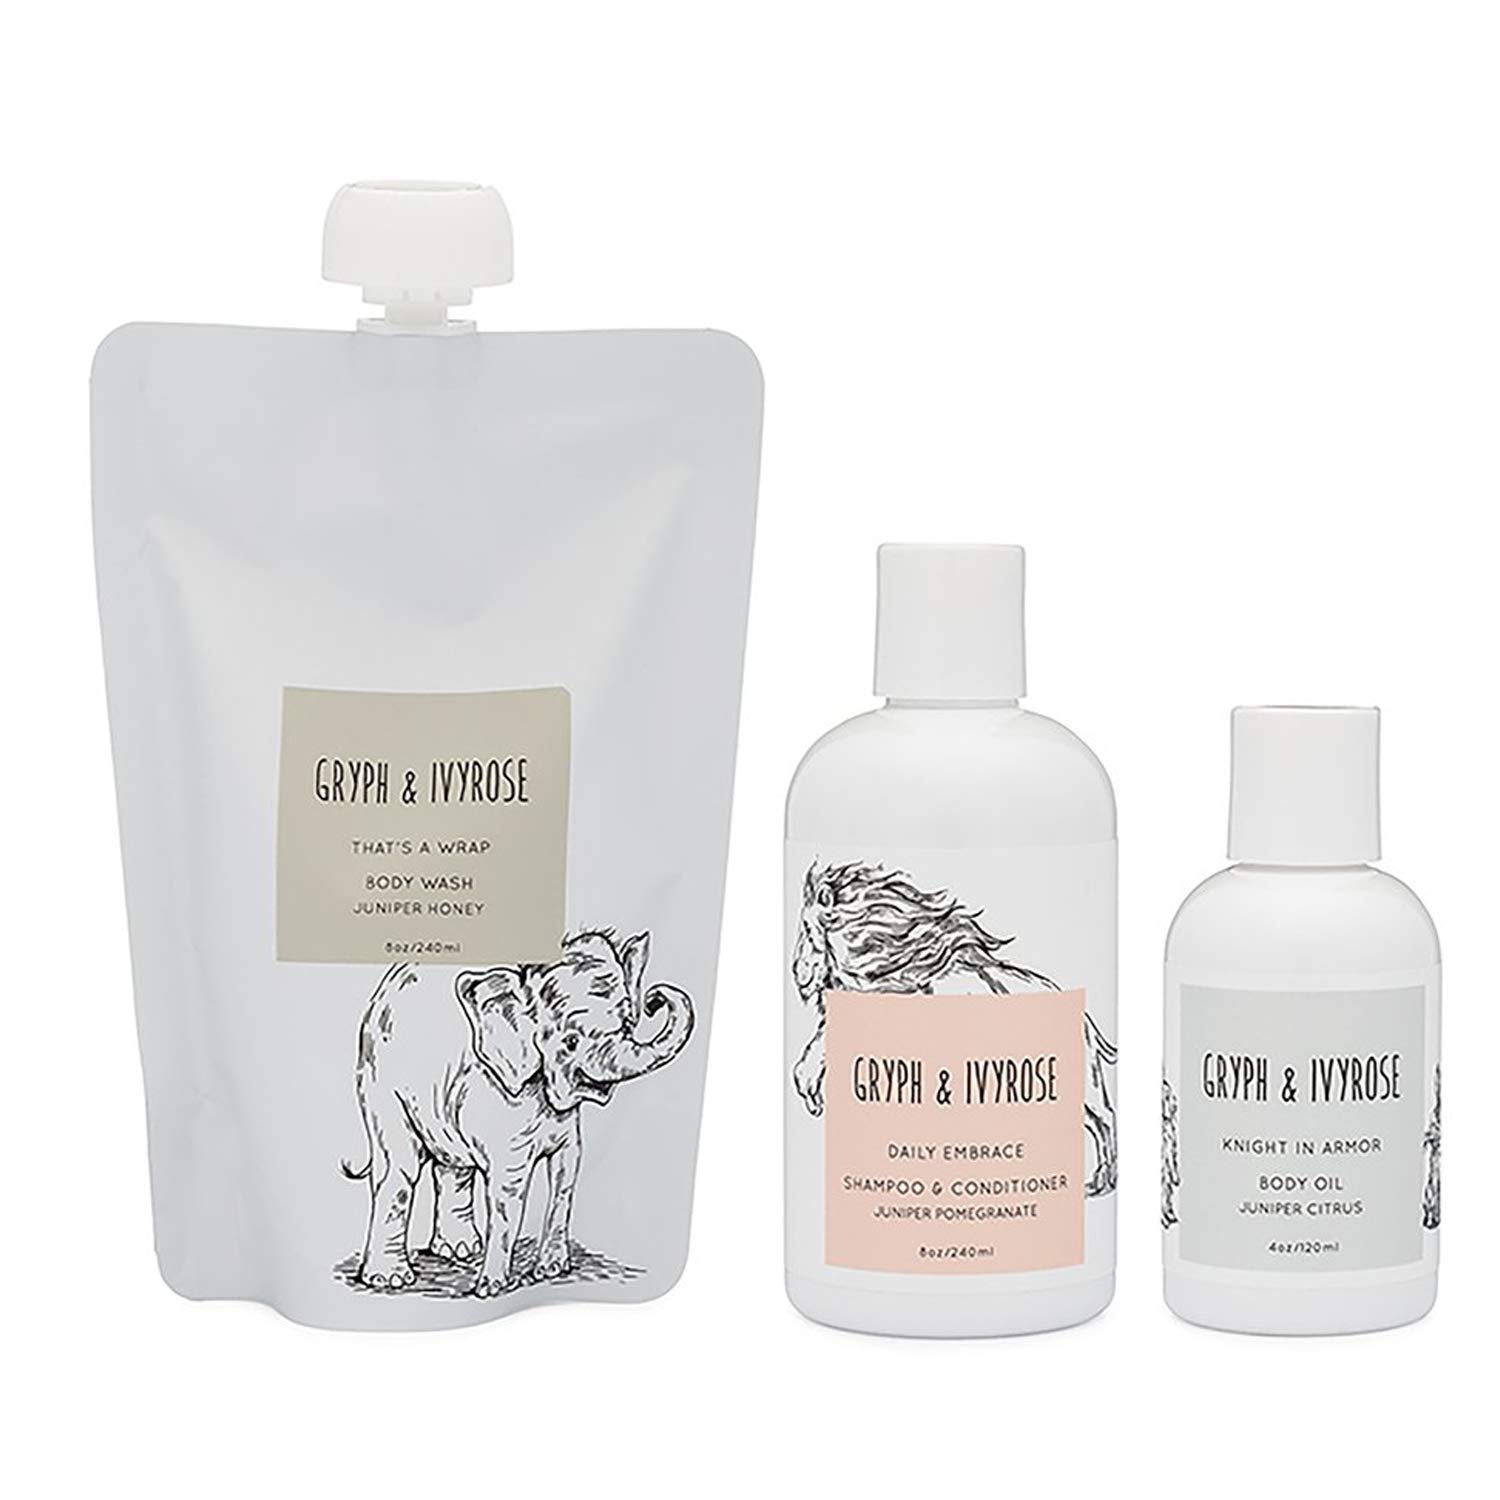 Gryph & IvyRose Newborn Essentails, newborn baby gift set filled with bath essentials including body wash, skin care kit by Gryph & IvyRose